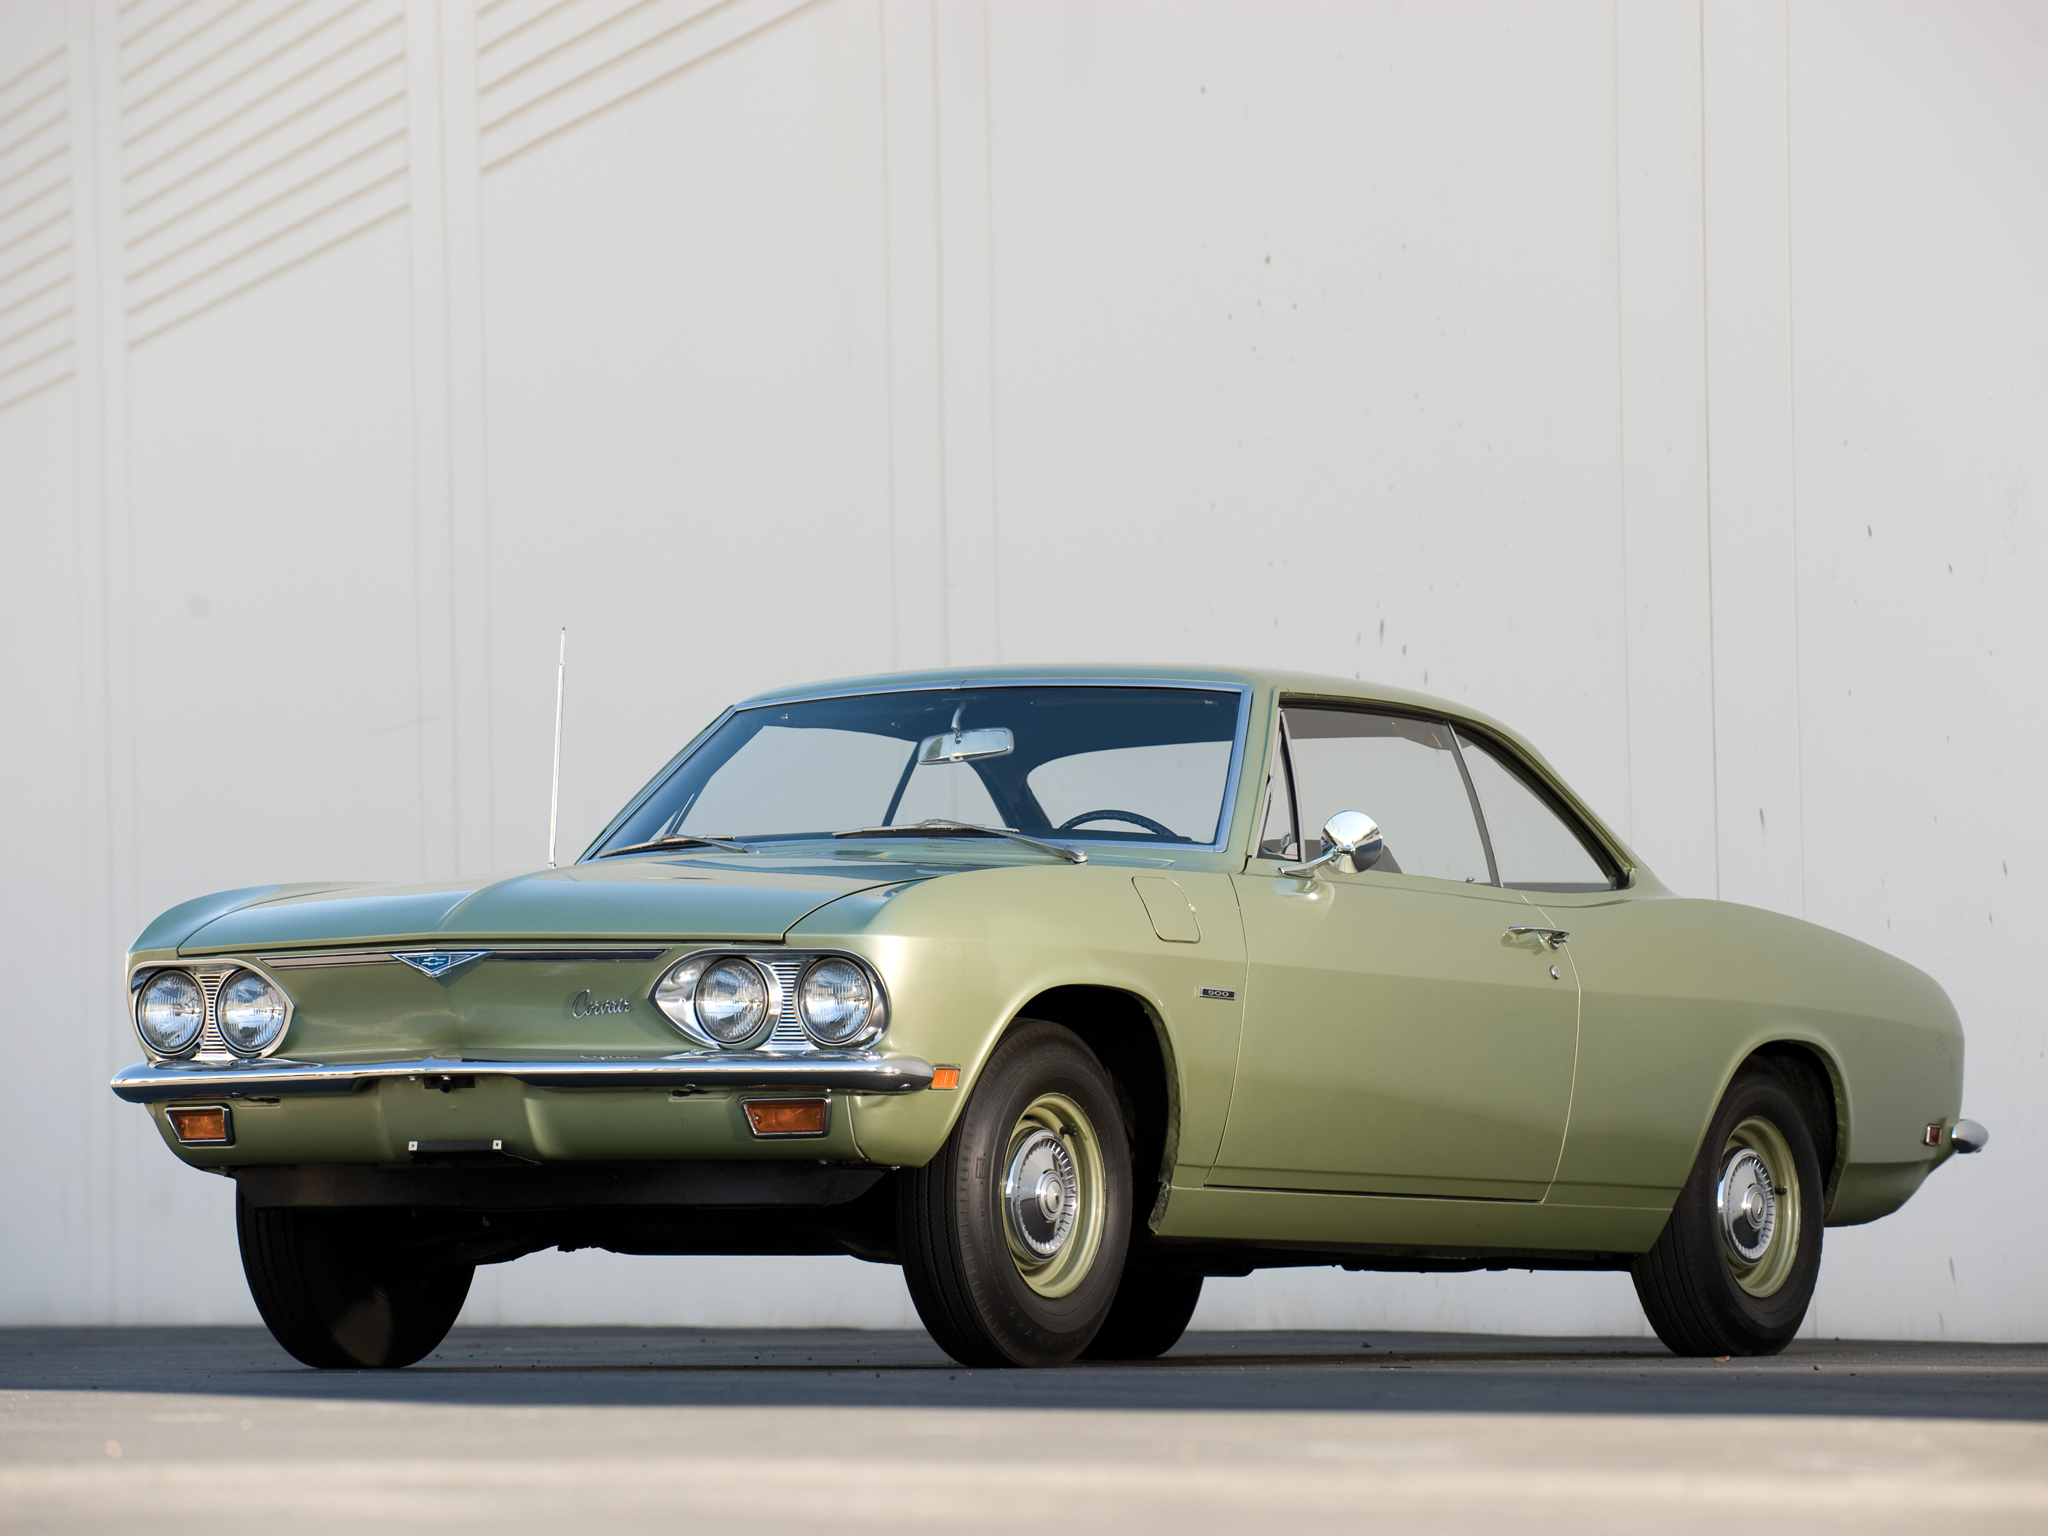 Chevrolet-corvair-coupe-turbo-1965-1 Interesting Tvr Griffith 500 Ignition Timing Cars Trend